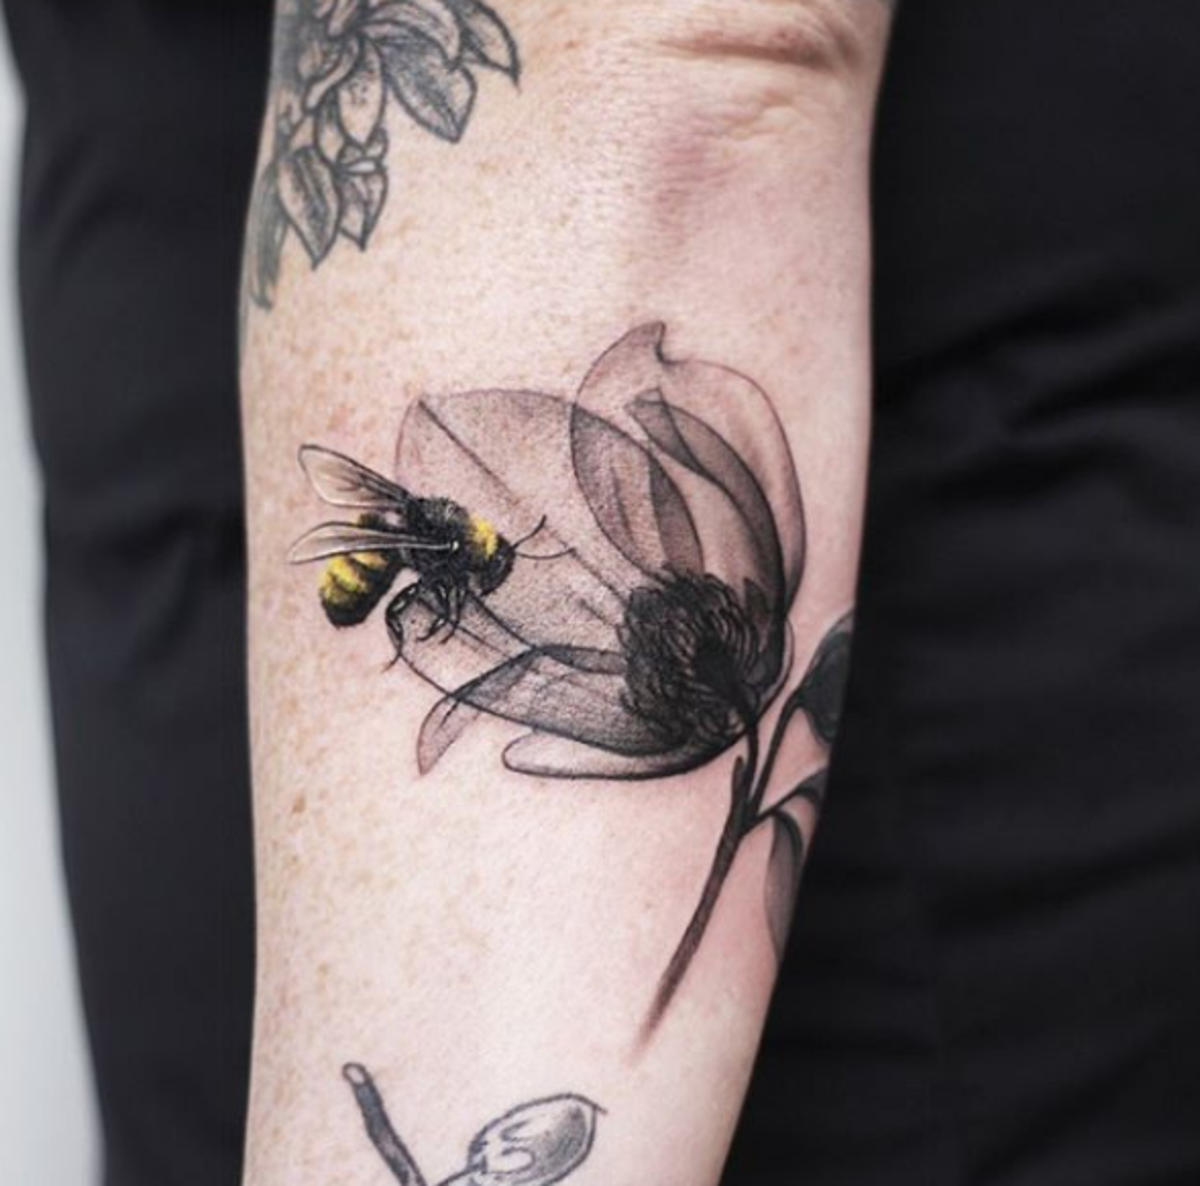 Tattoo Trends 2020.These Will Be The Top 10 Tattoo Trends Of 2019 Tattoo